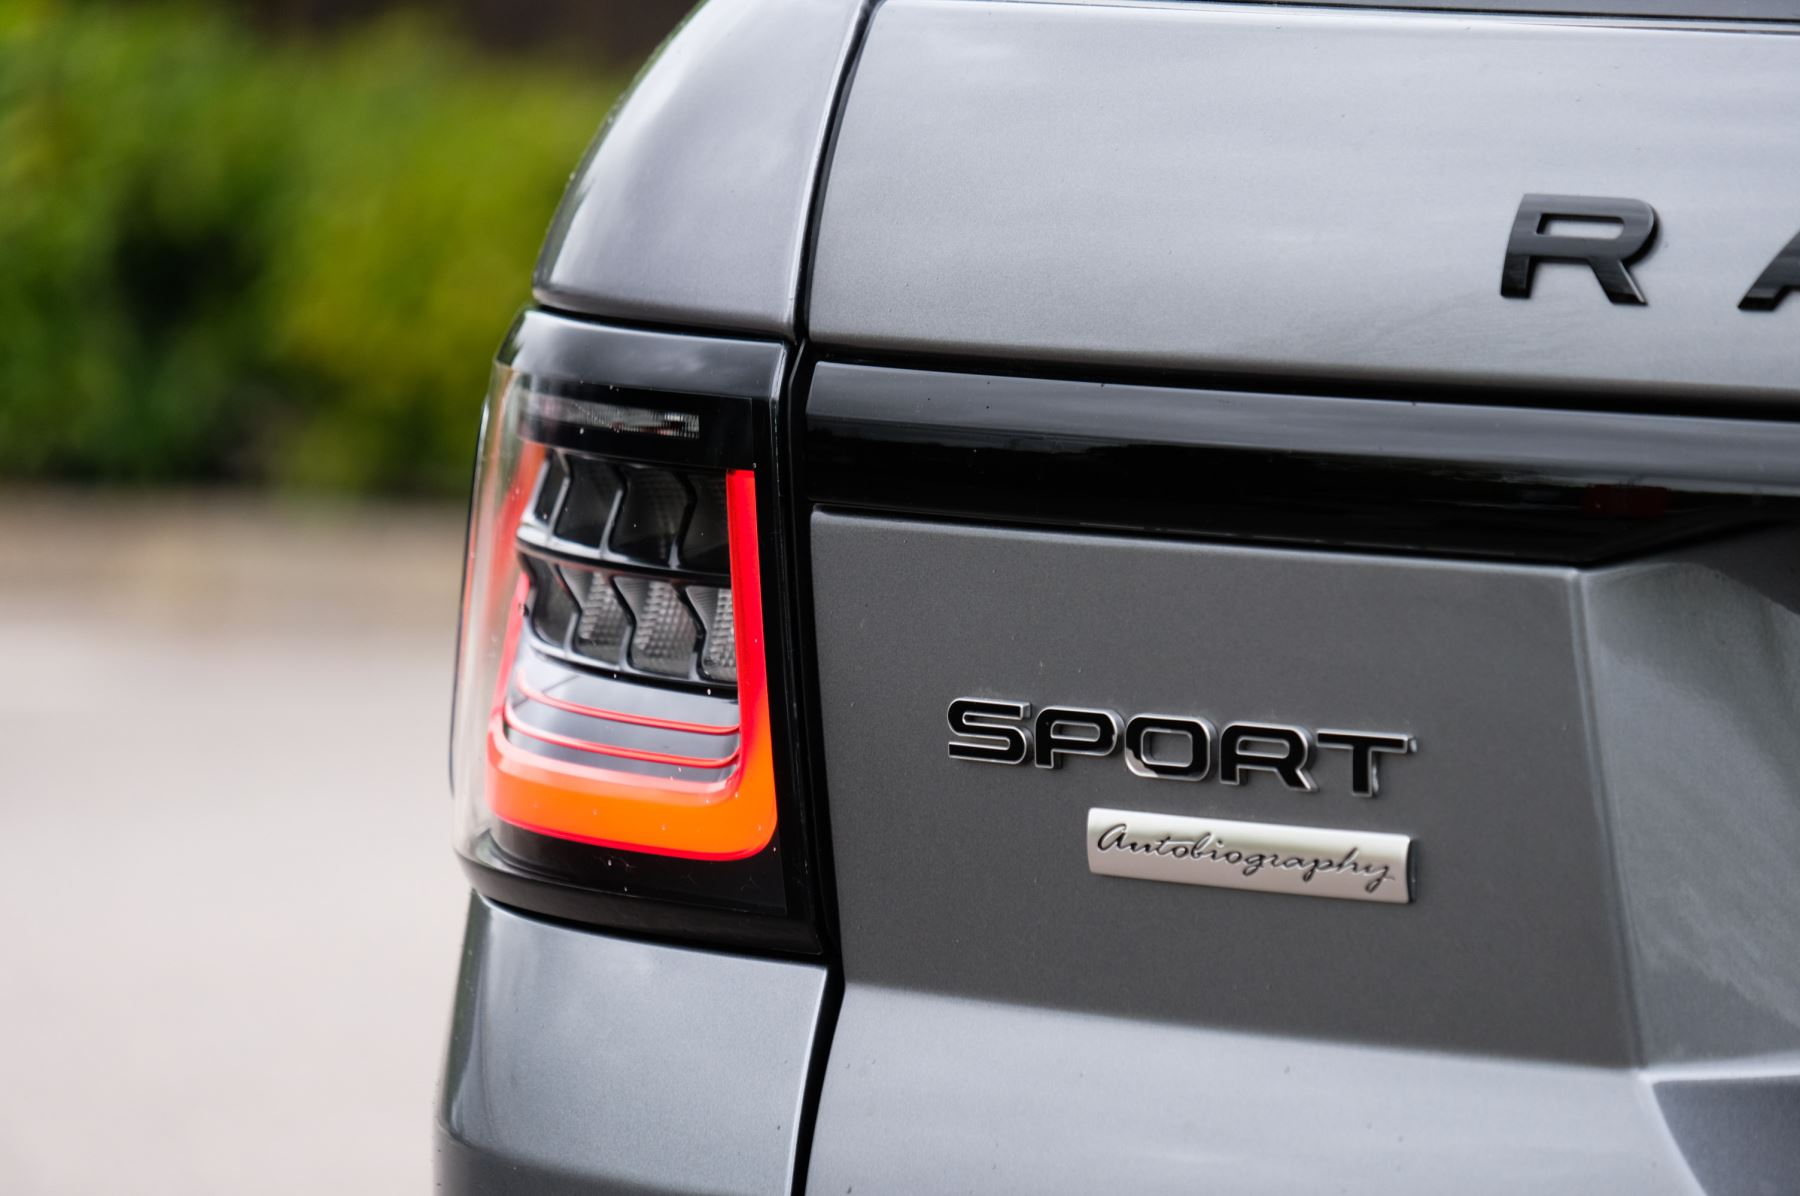 Land Rover Range Rover Sport 3.0 SDV6 Autobiography Dynamic 5dr [7 Seat] - Rear Seat Entertainment - 21 Inch Alloys image 10